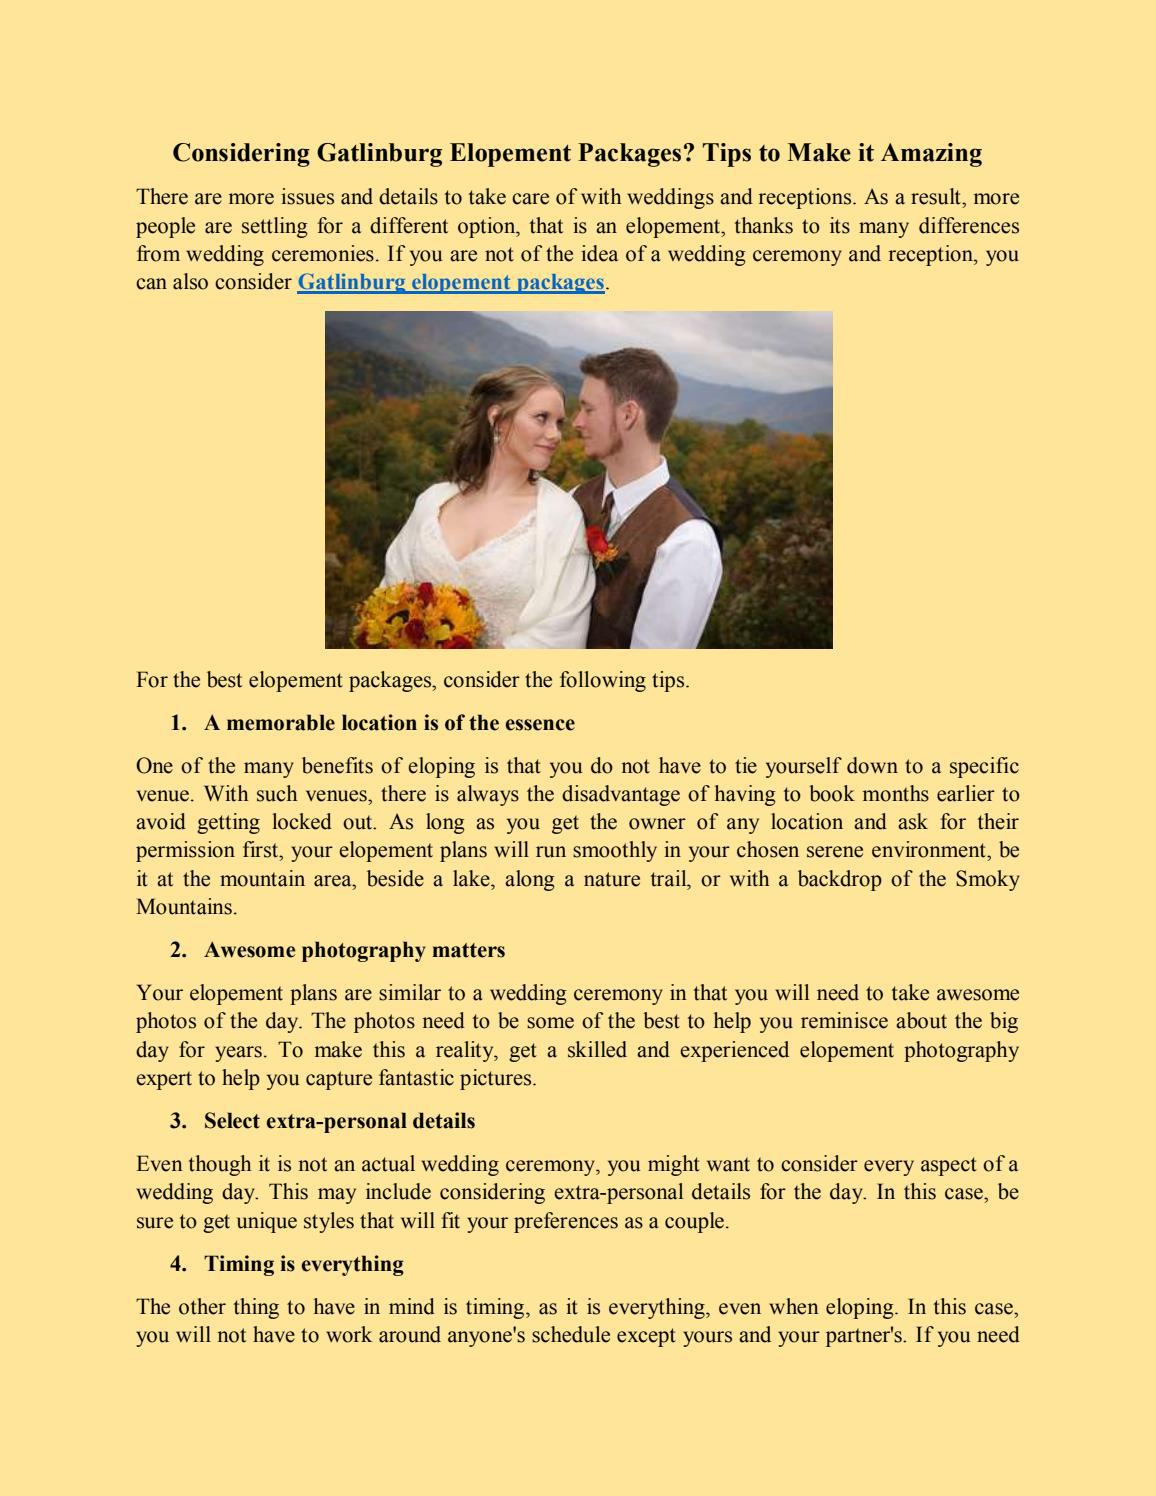 Considering Gatlinburg Elopement Packages? Tips to Make it Amazing